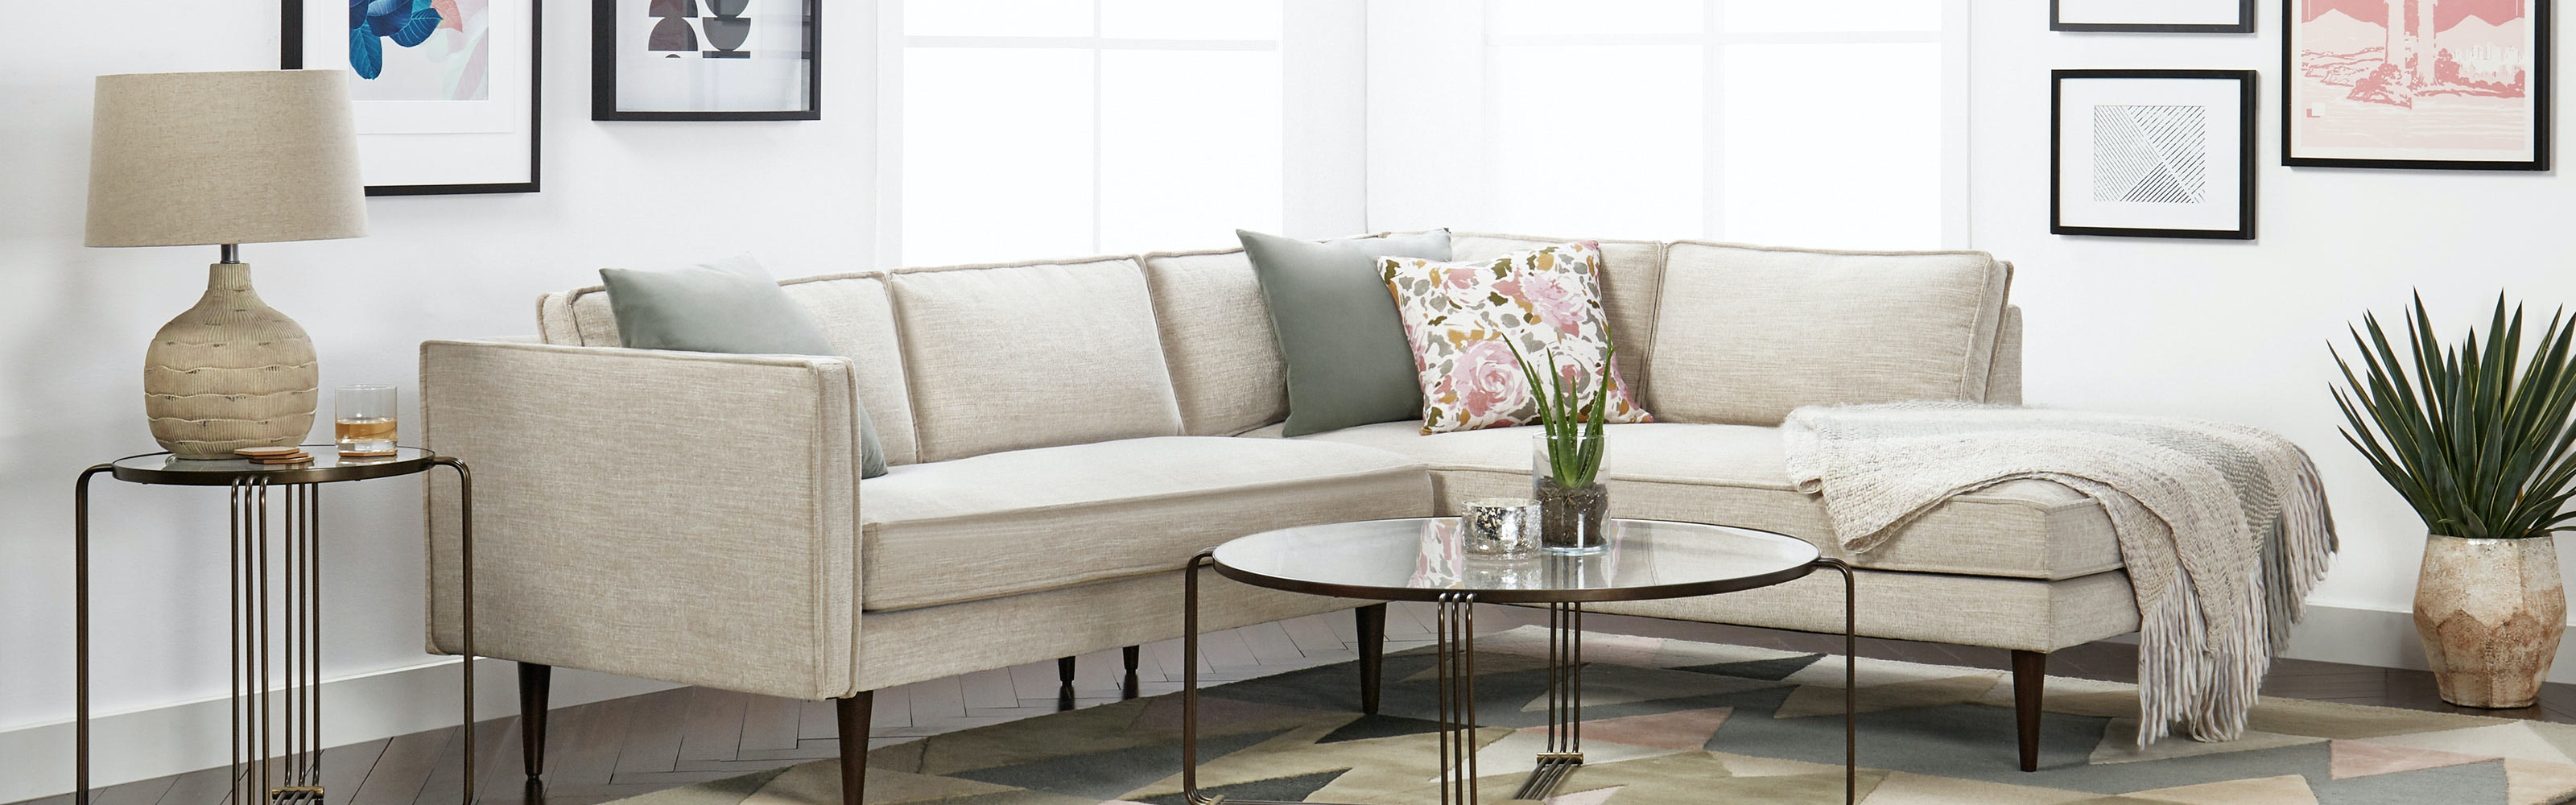 Sectional Sofas Couches In Fabric Or Leather Joybird